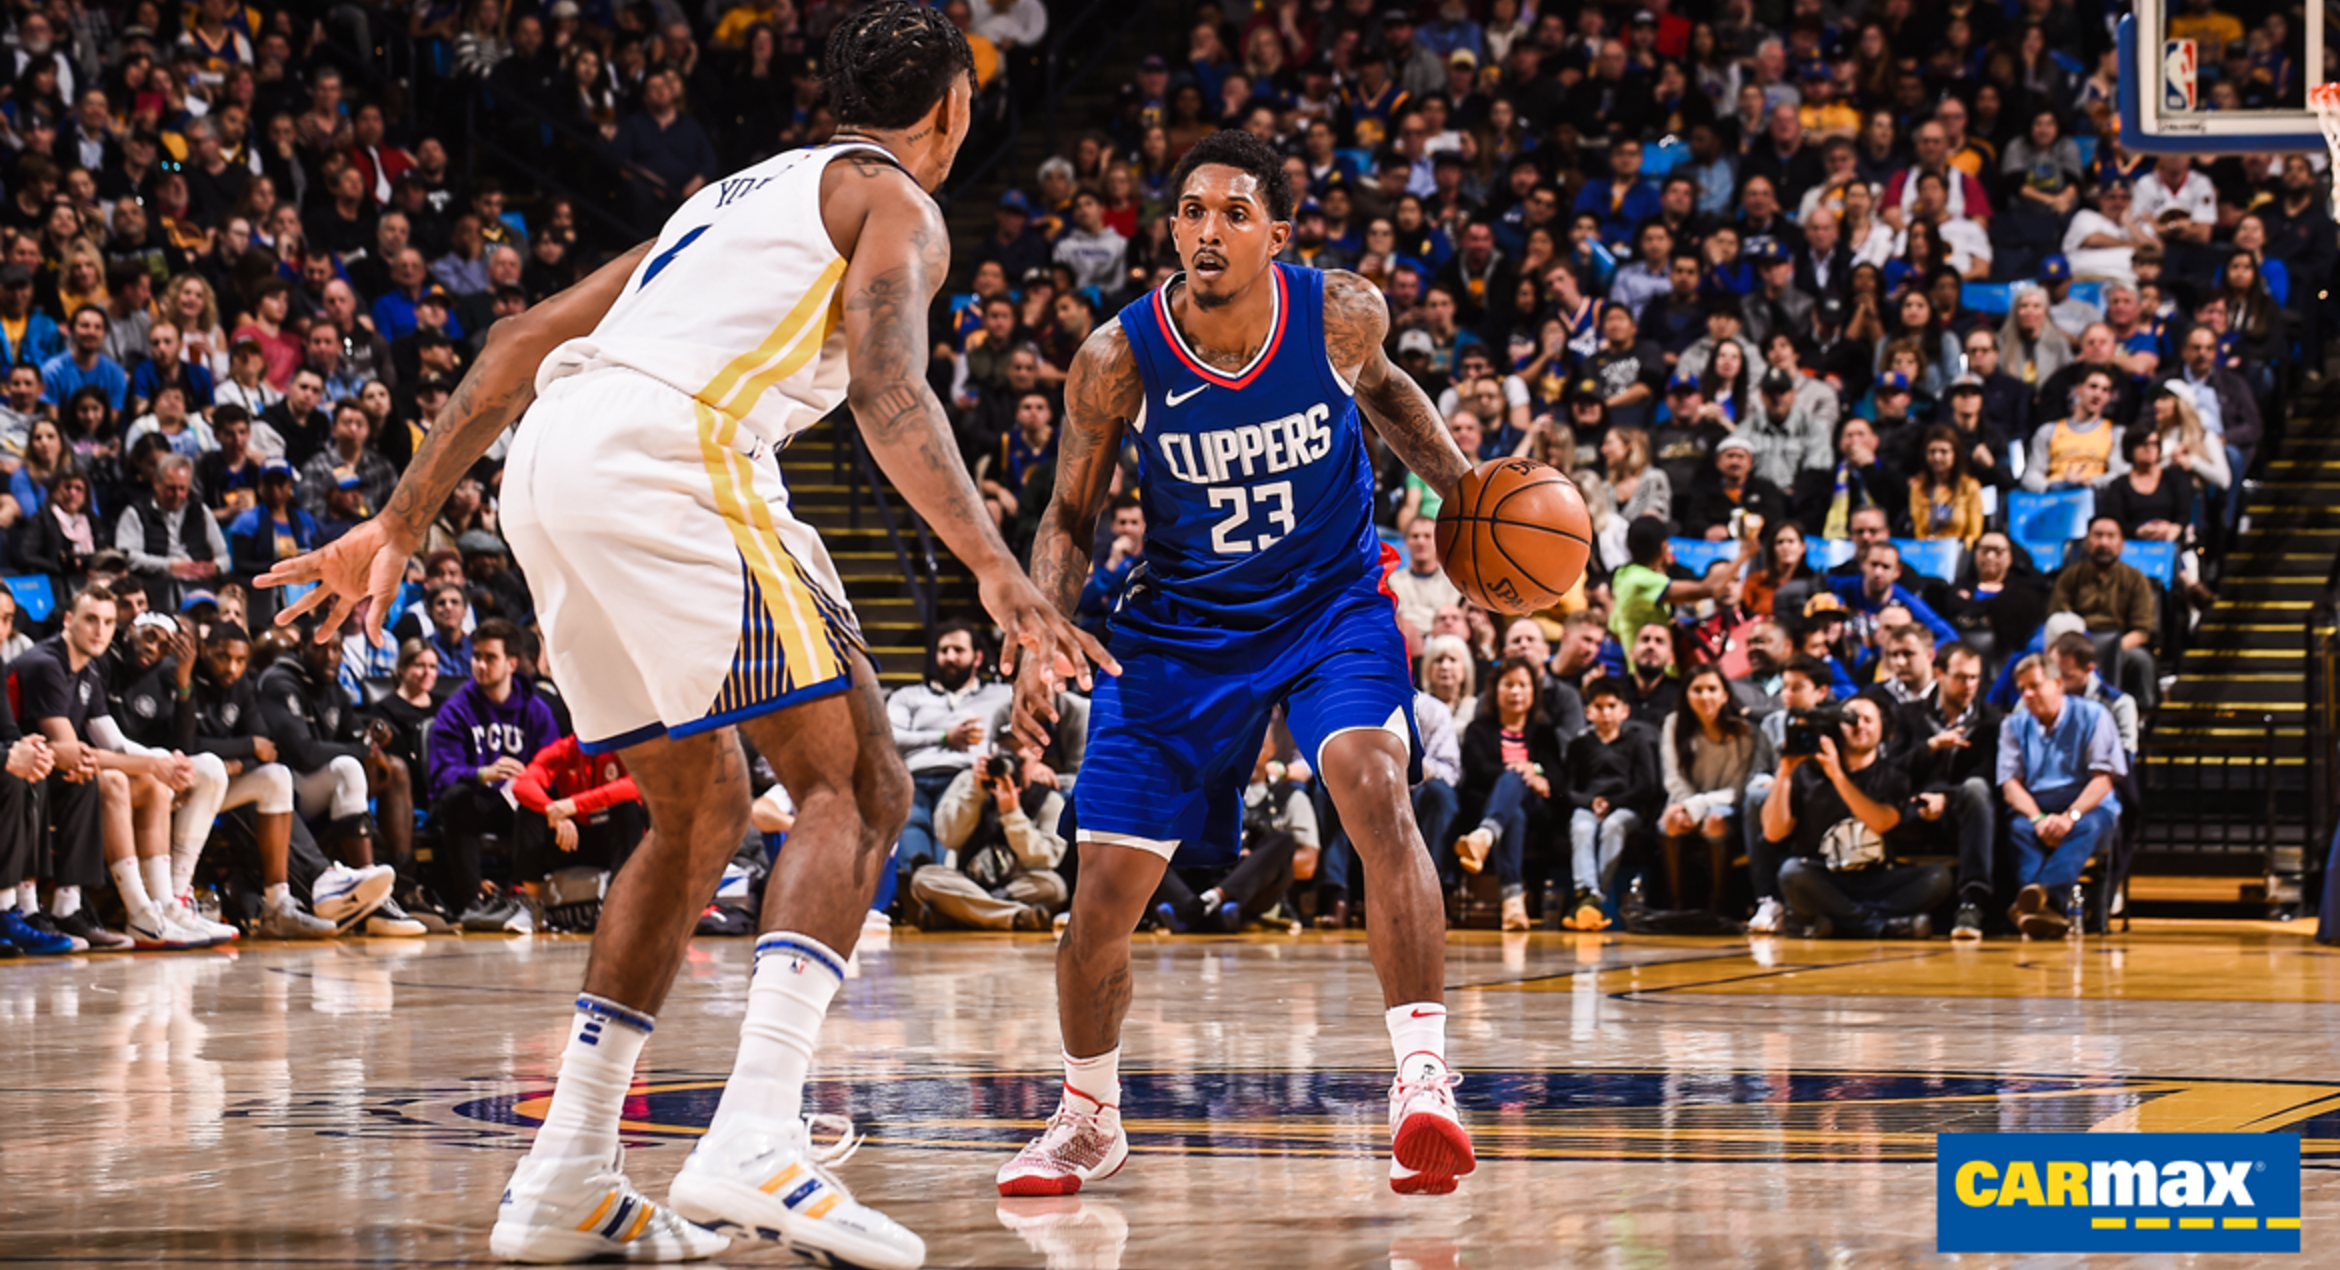 Gameday Report: Clippers vs. Warriors